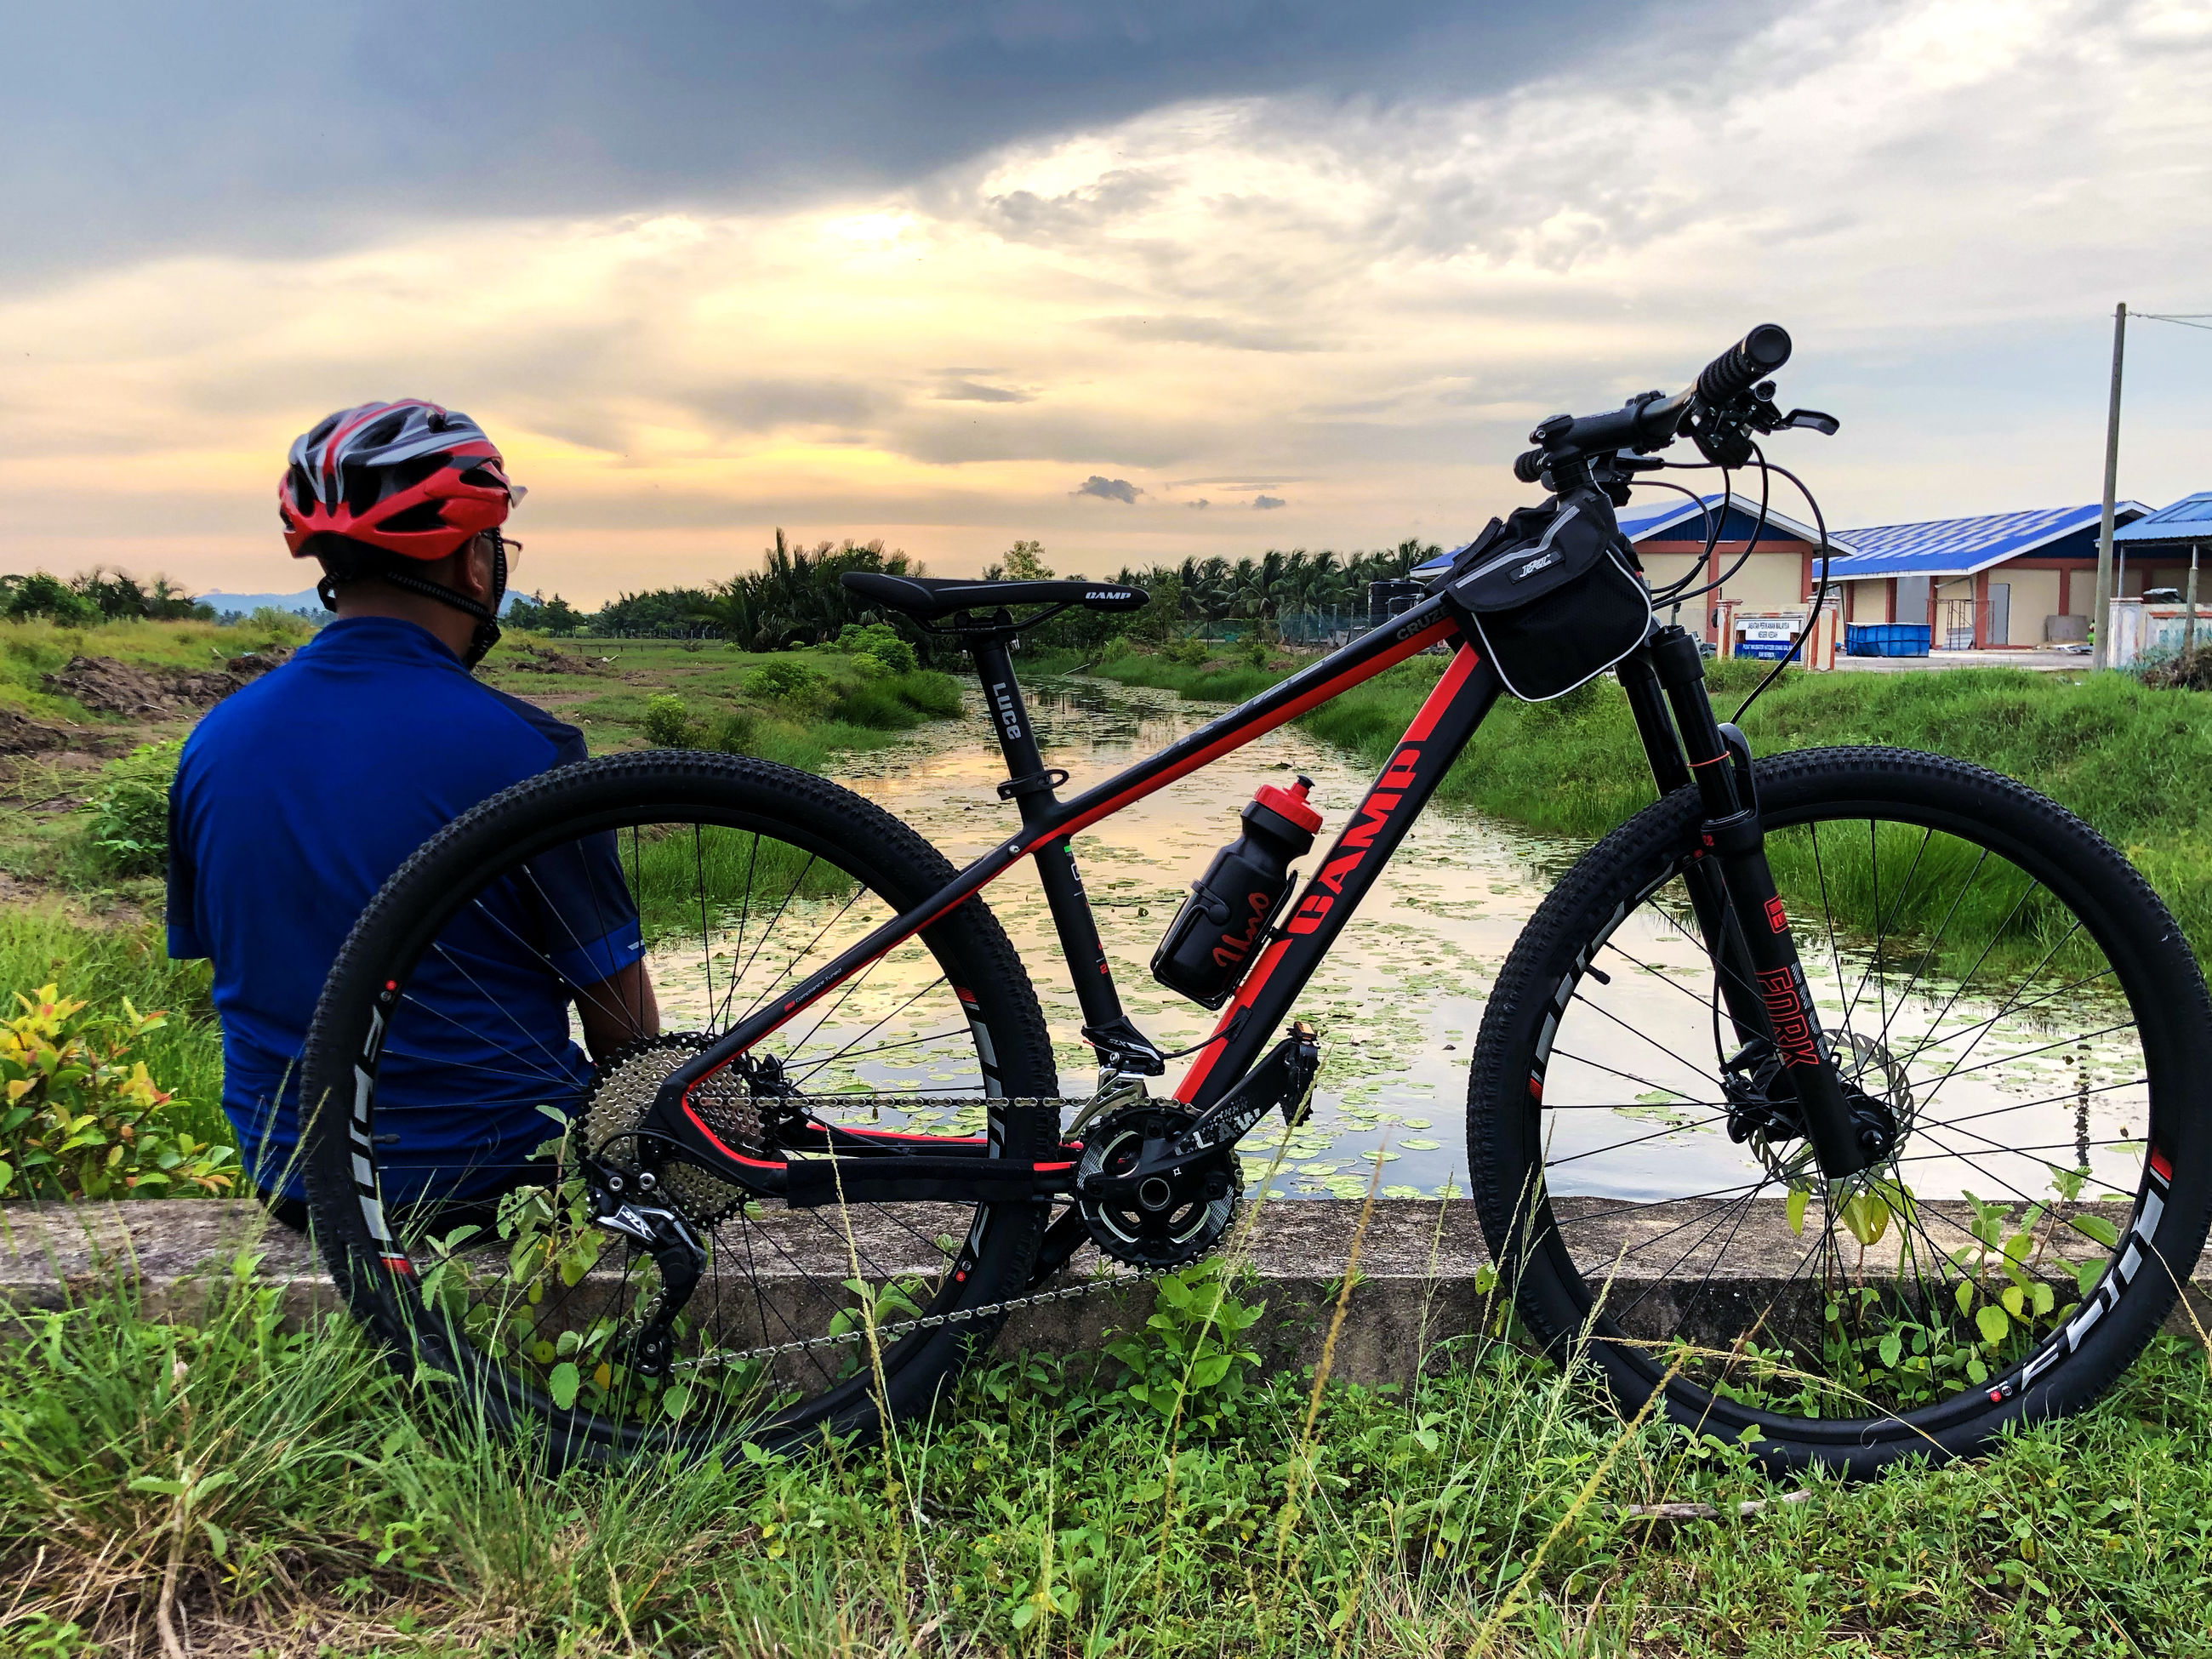 bicycle, transportation, cloud - sky, sky, grass, nature, plant, field, land vehicle, helmet, mode of transportation, land, real people, lifestyles, men, leisure activity, people, day, headwear, casual clothing, outdoors, wheel, riding